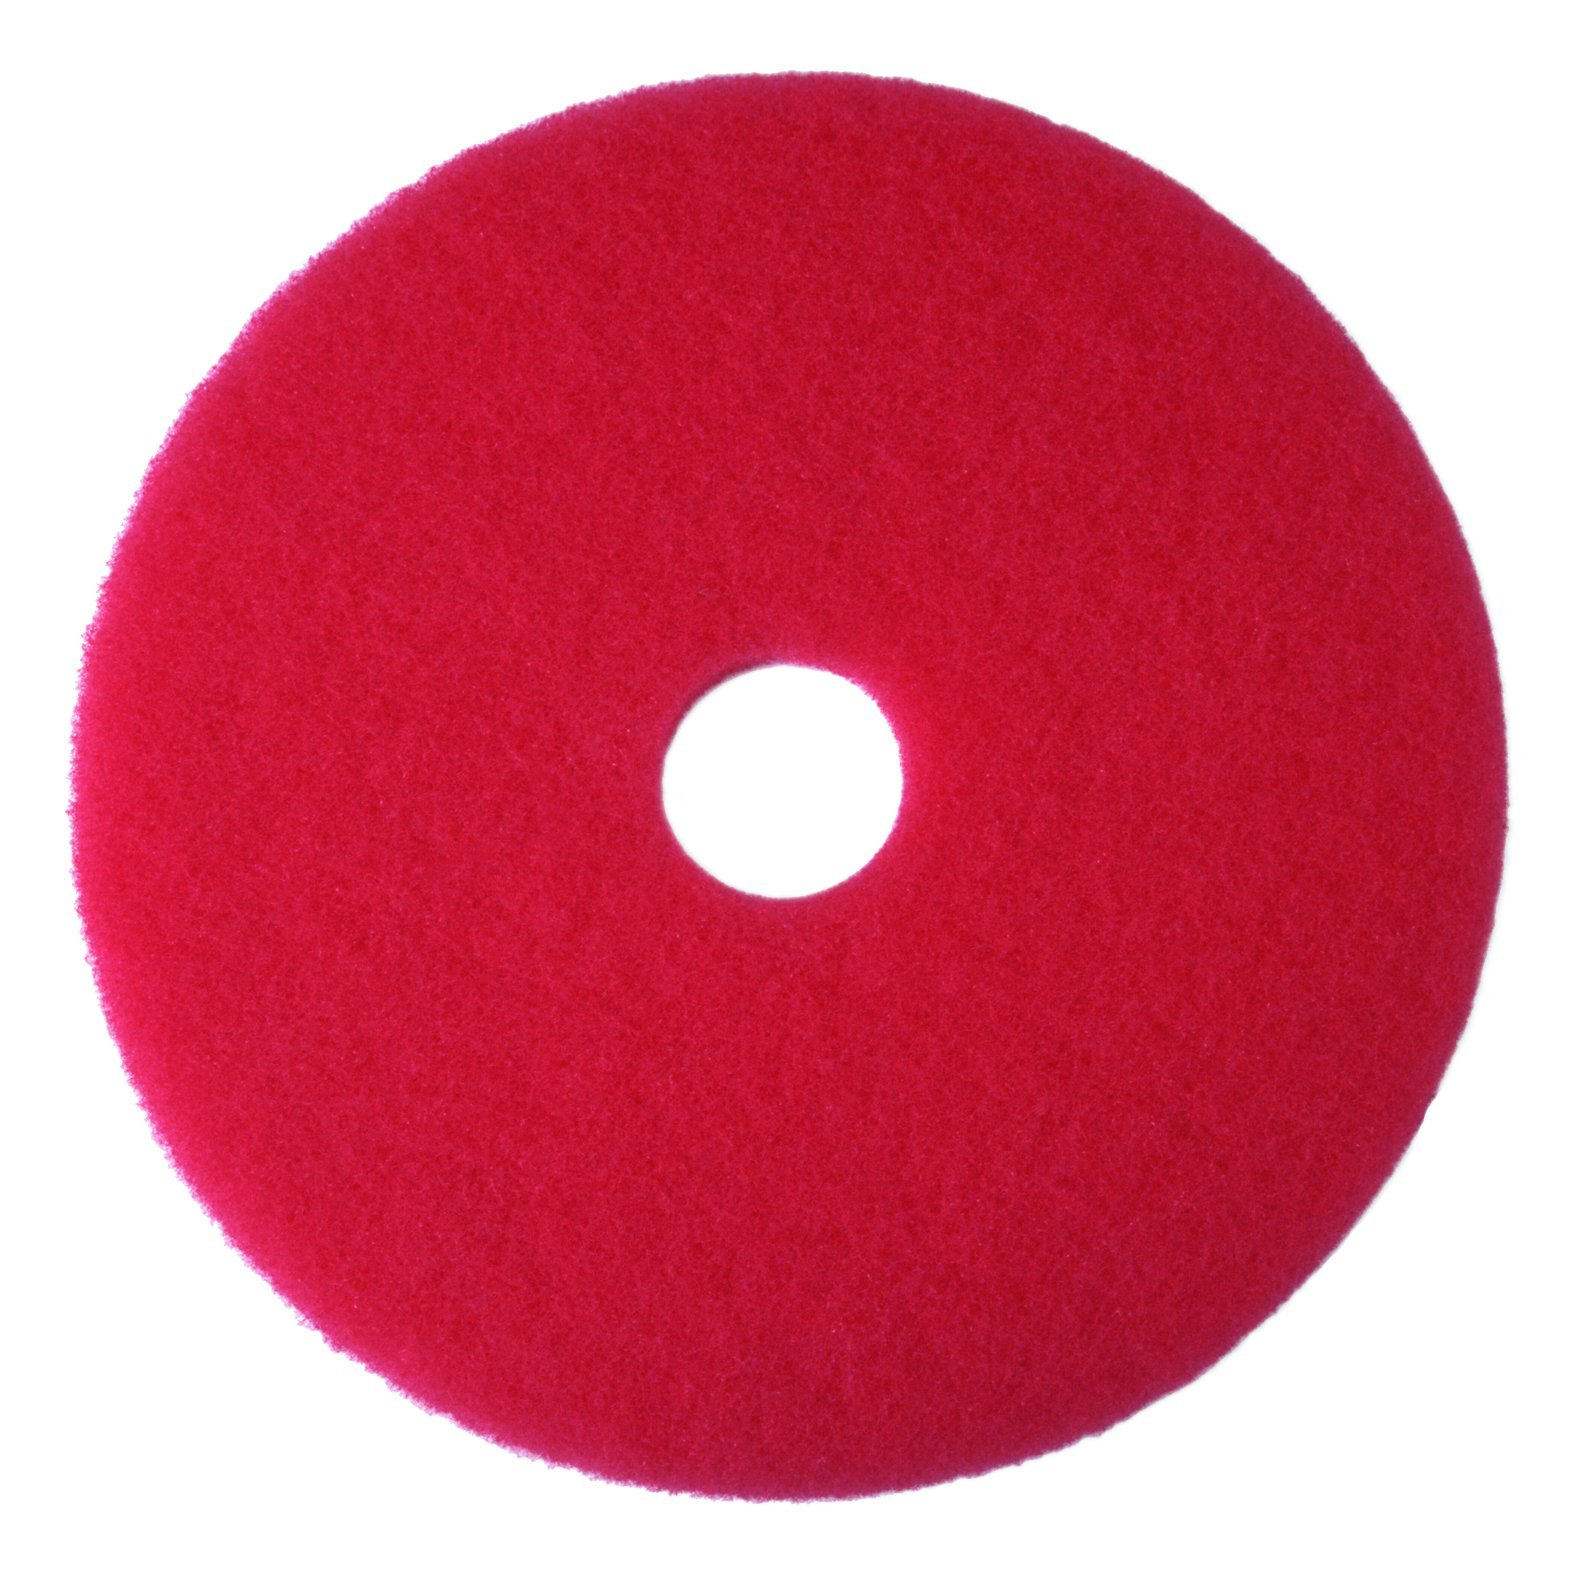 3M Red Buffer Pad 5100, 12'' Floor Buffer, Machine Use (Case of 5) by 3M